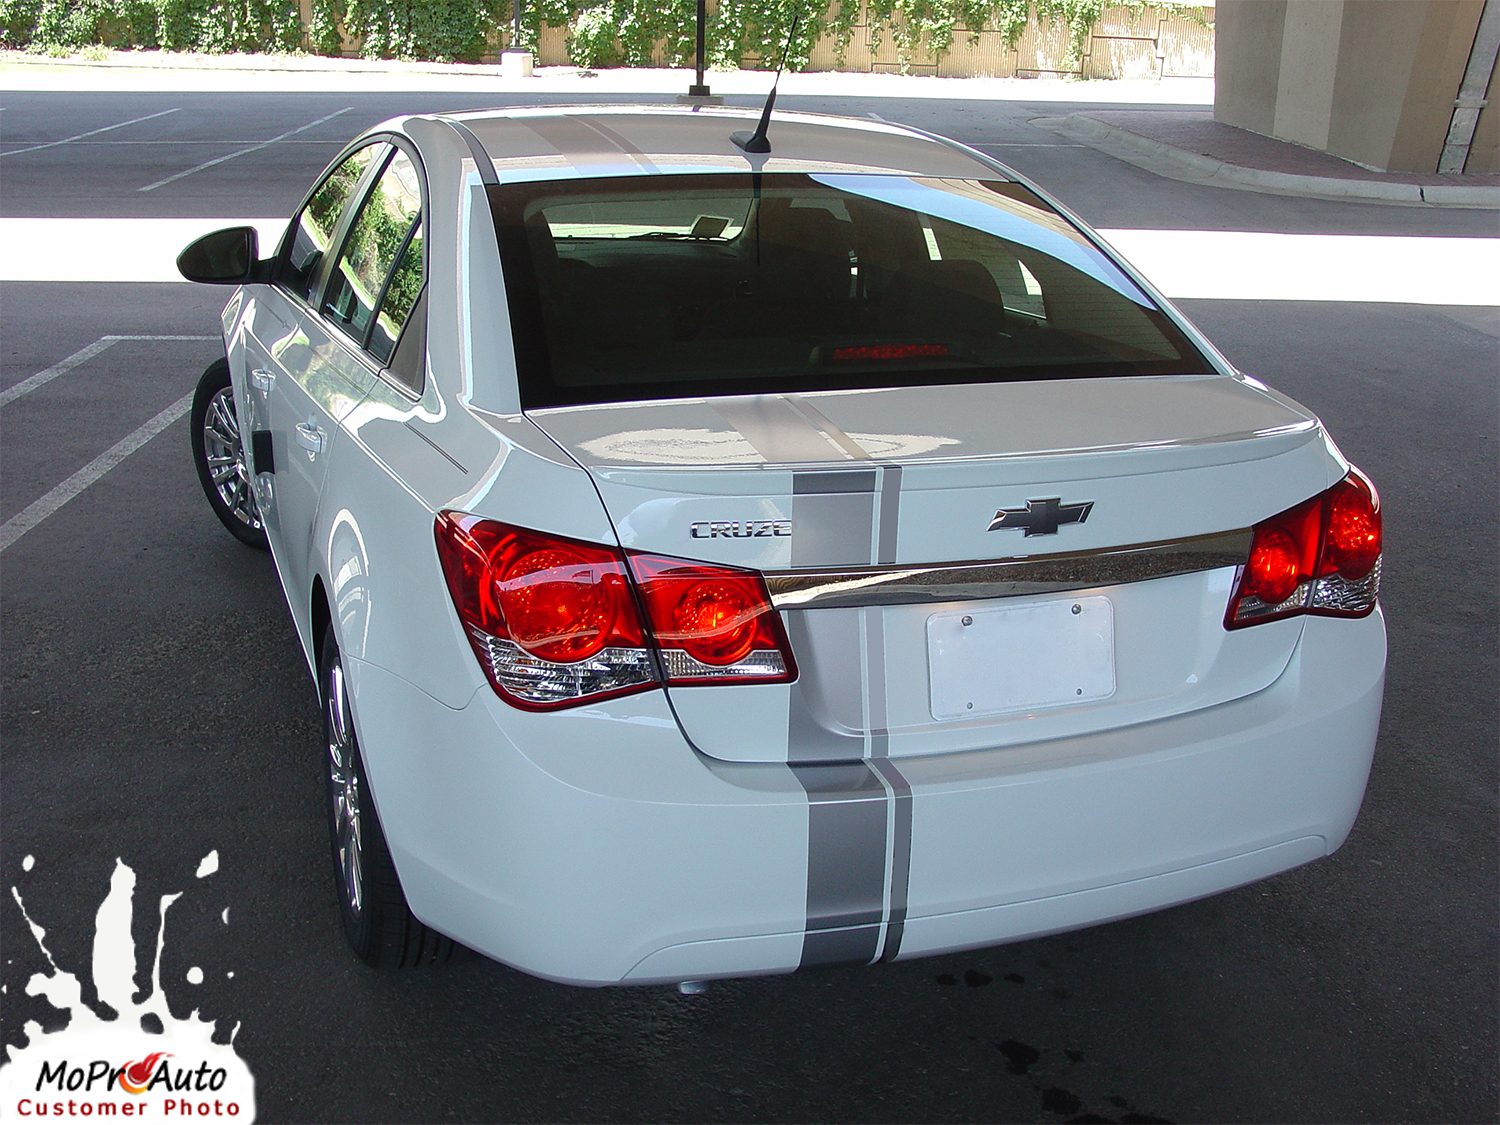 Chevy Cruze RALLY STRIPES Vinyl Graphics, Stripes and Decals Set